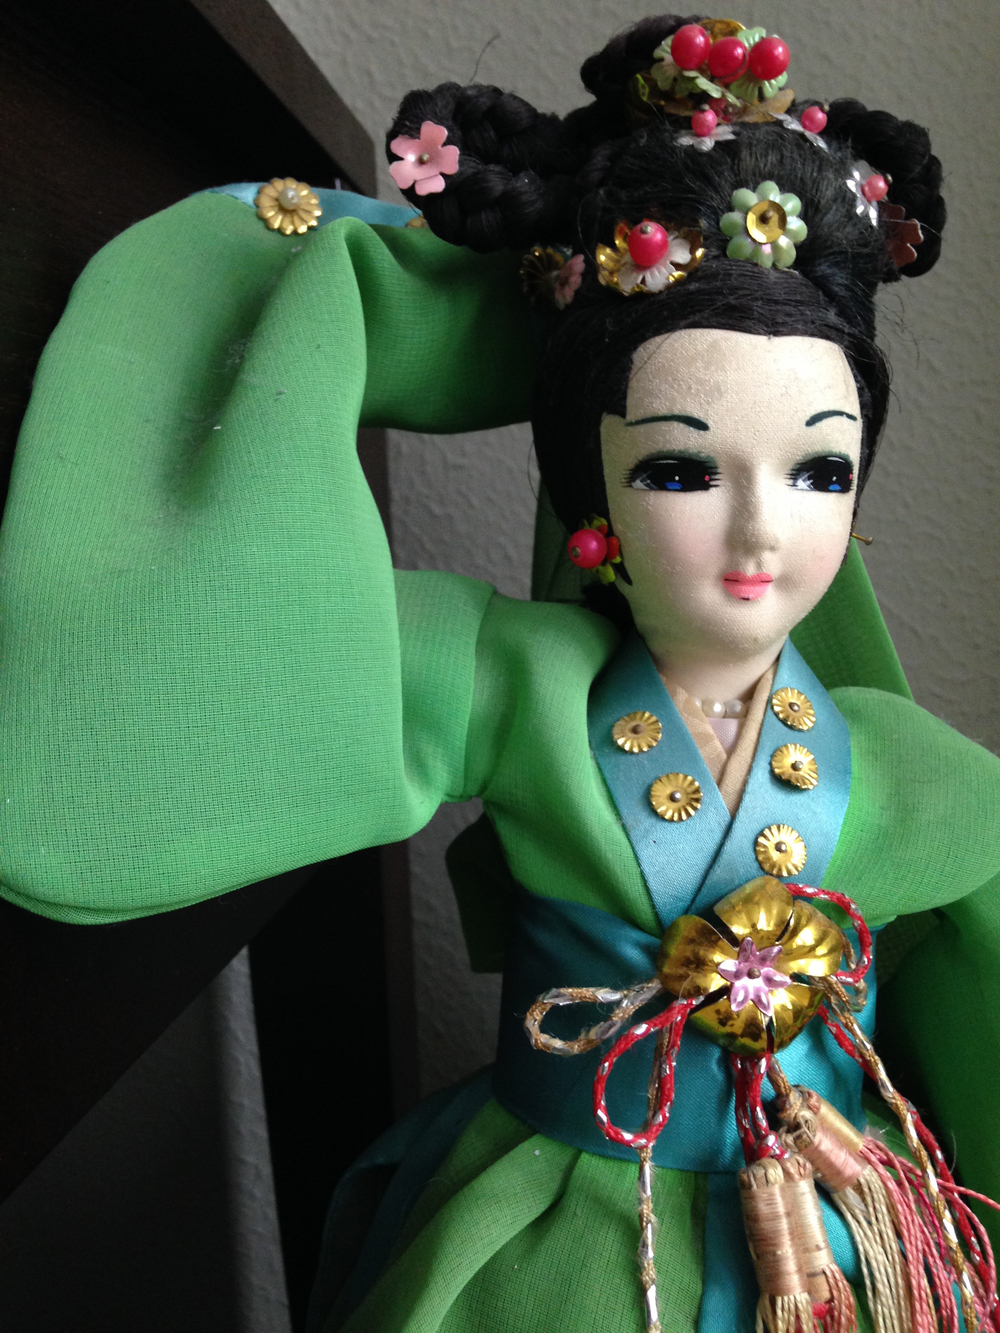 This is a doll my grandma picked up during her global travels that I was lucky to inherit. Her vibrant colors are so gorgeous. She hangs out in my office these days.